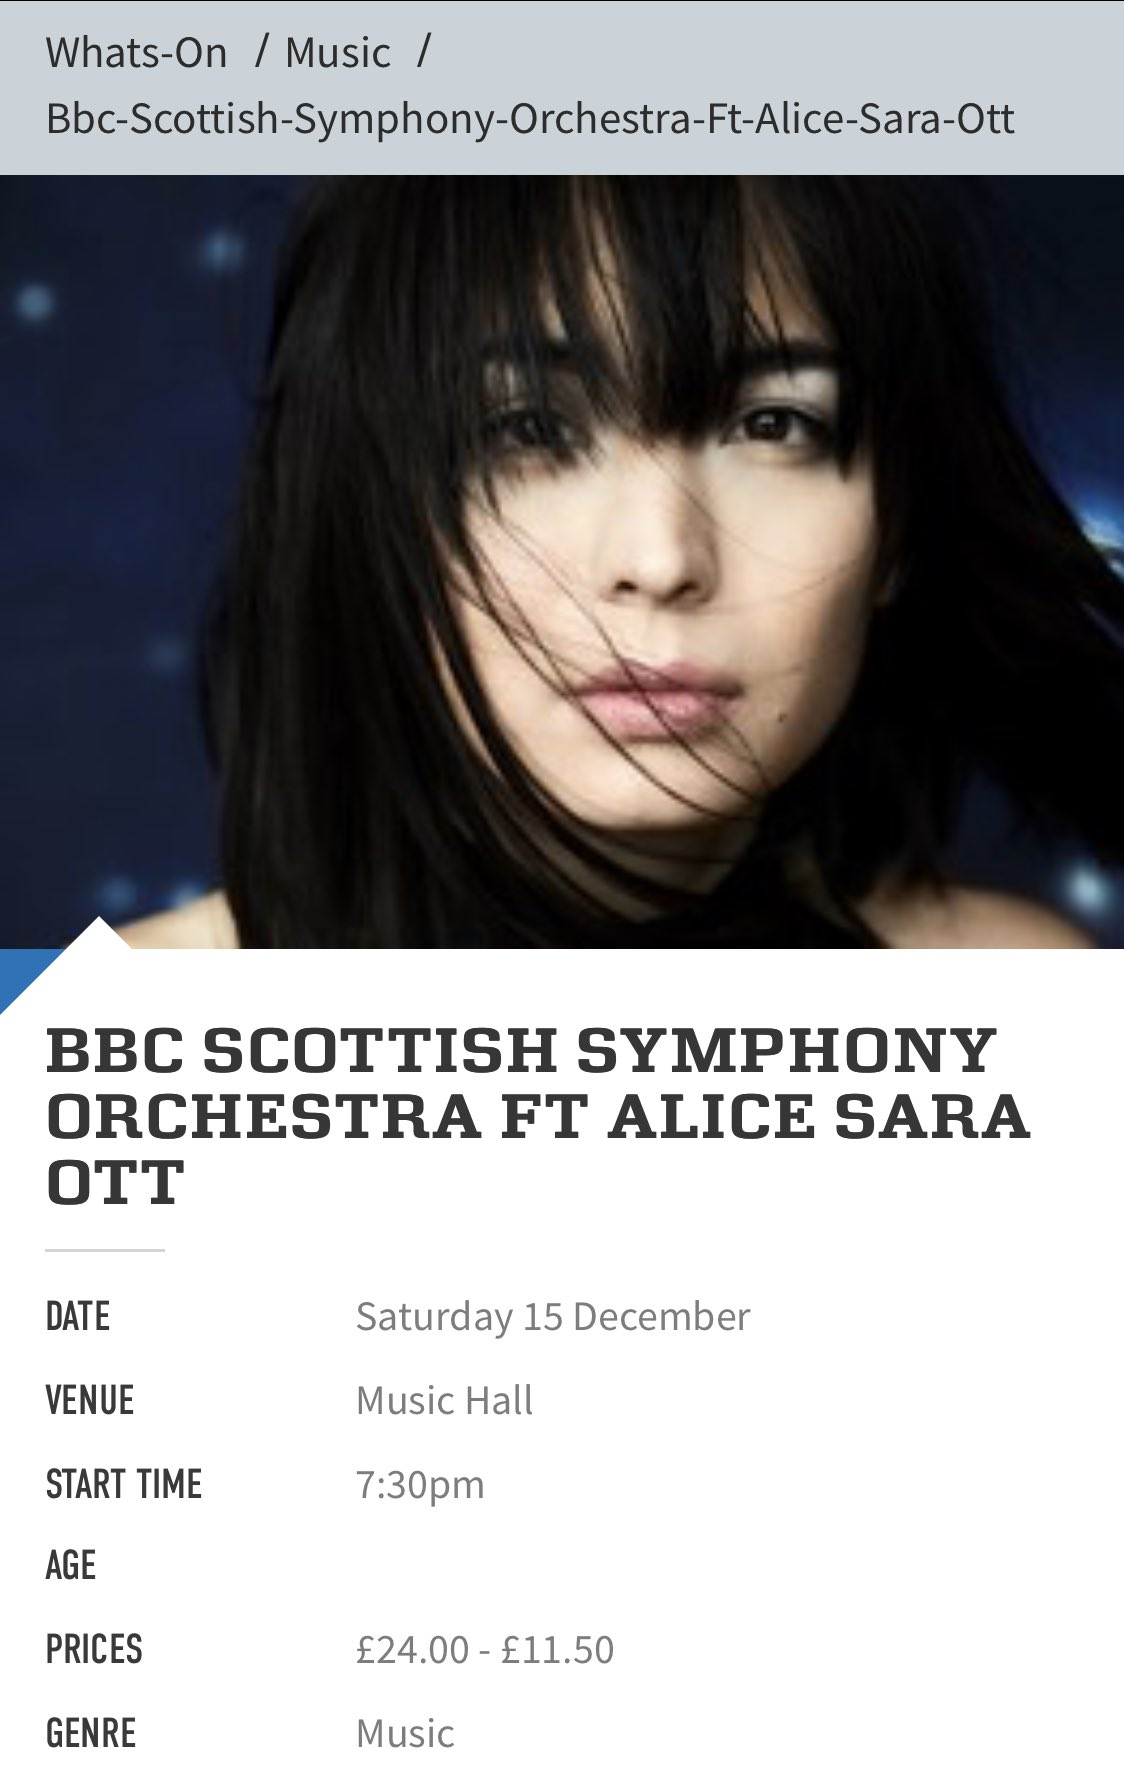 Reloaded twaddle – RT @AMusicland: BBC Scottish Symphony Orchestra ft Alice Sara Ott on 15 Dec 2018...